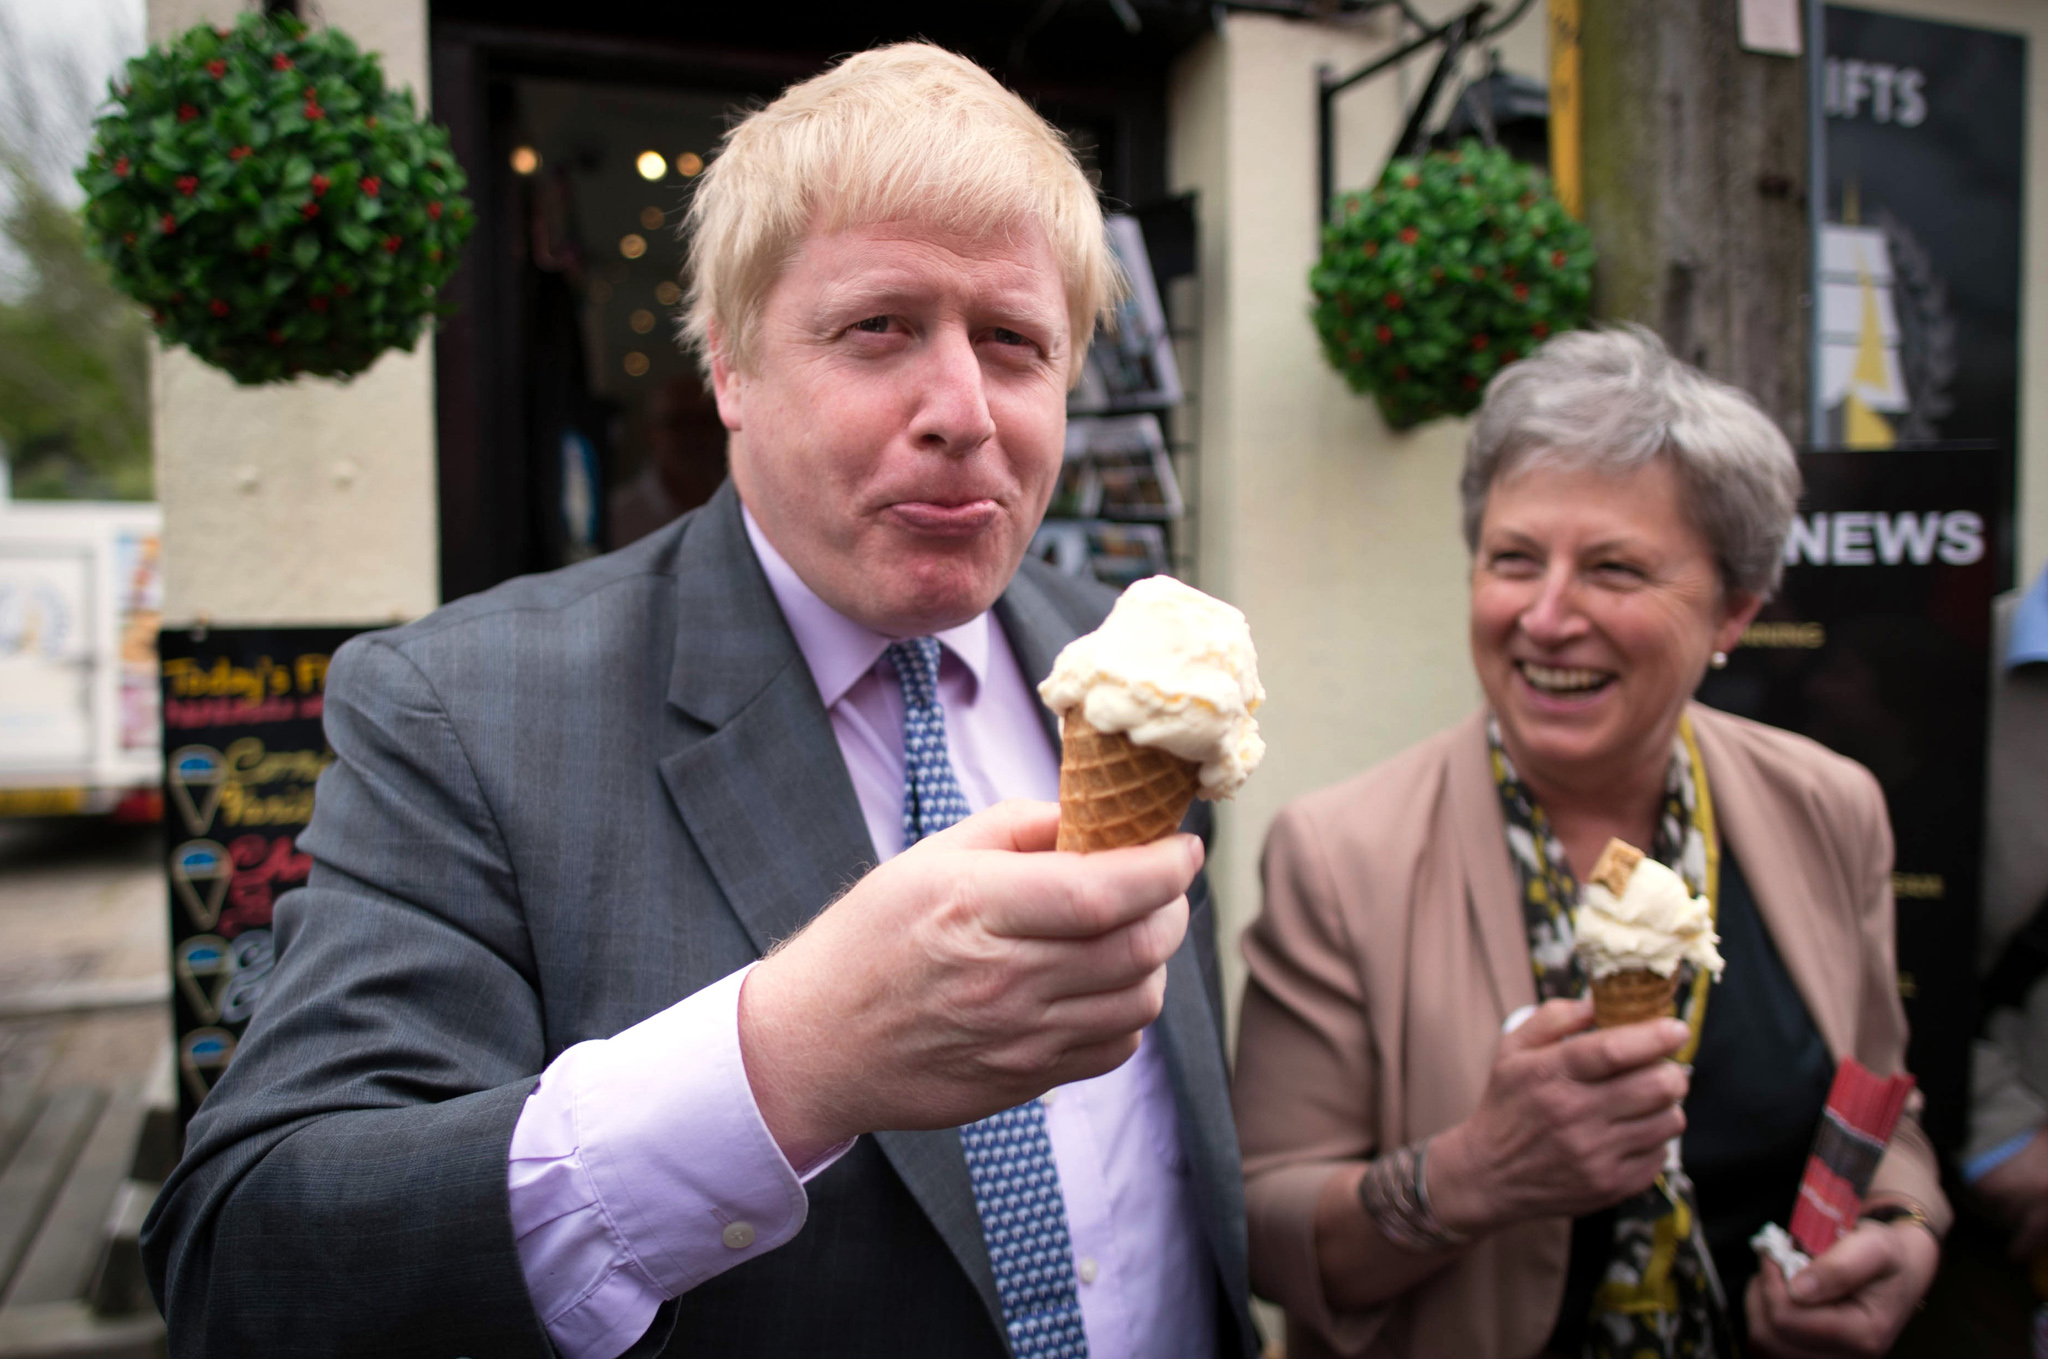 Former Mayor of London Boris Johnson and fellow Vote Leave campaigner Gisela Stuart MP enjoy an ice cream while in Charlestown, Cornwall, during a Vote Leave campaign visit